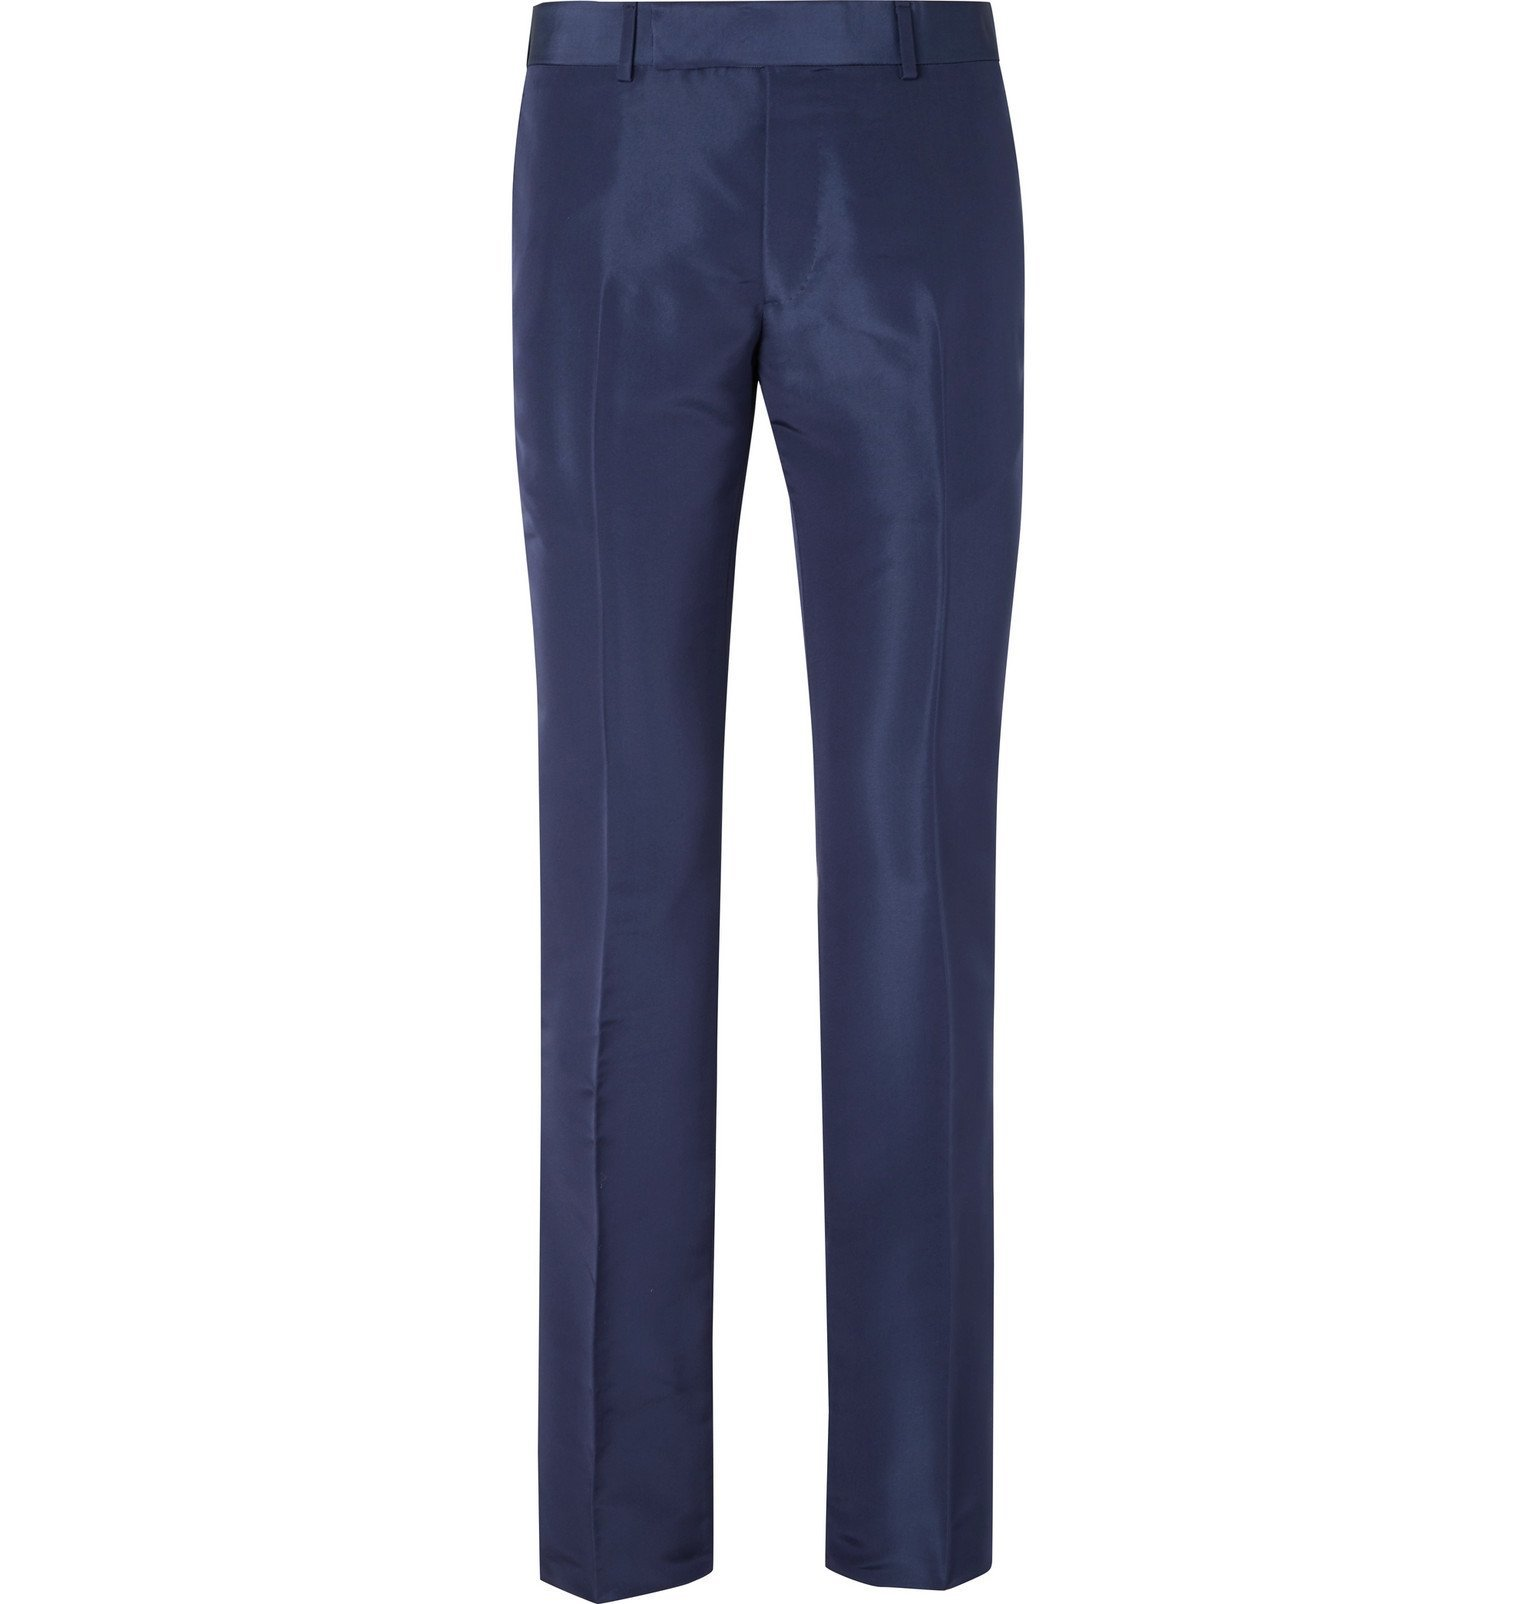 Dunhill - Navy Slim-Fit Mulberry Silk Suit Trousers - Blue